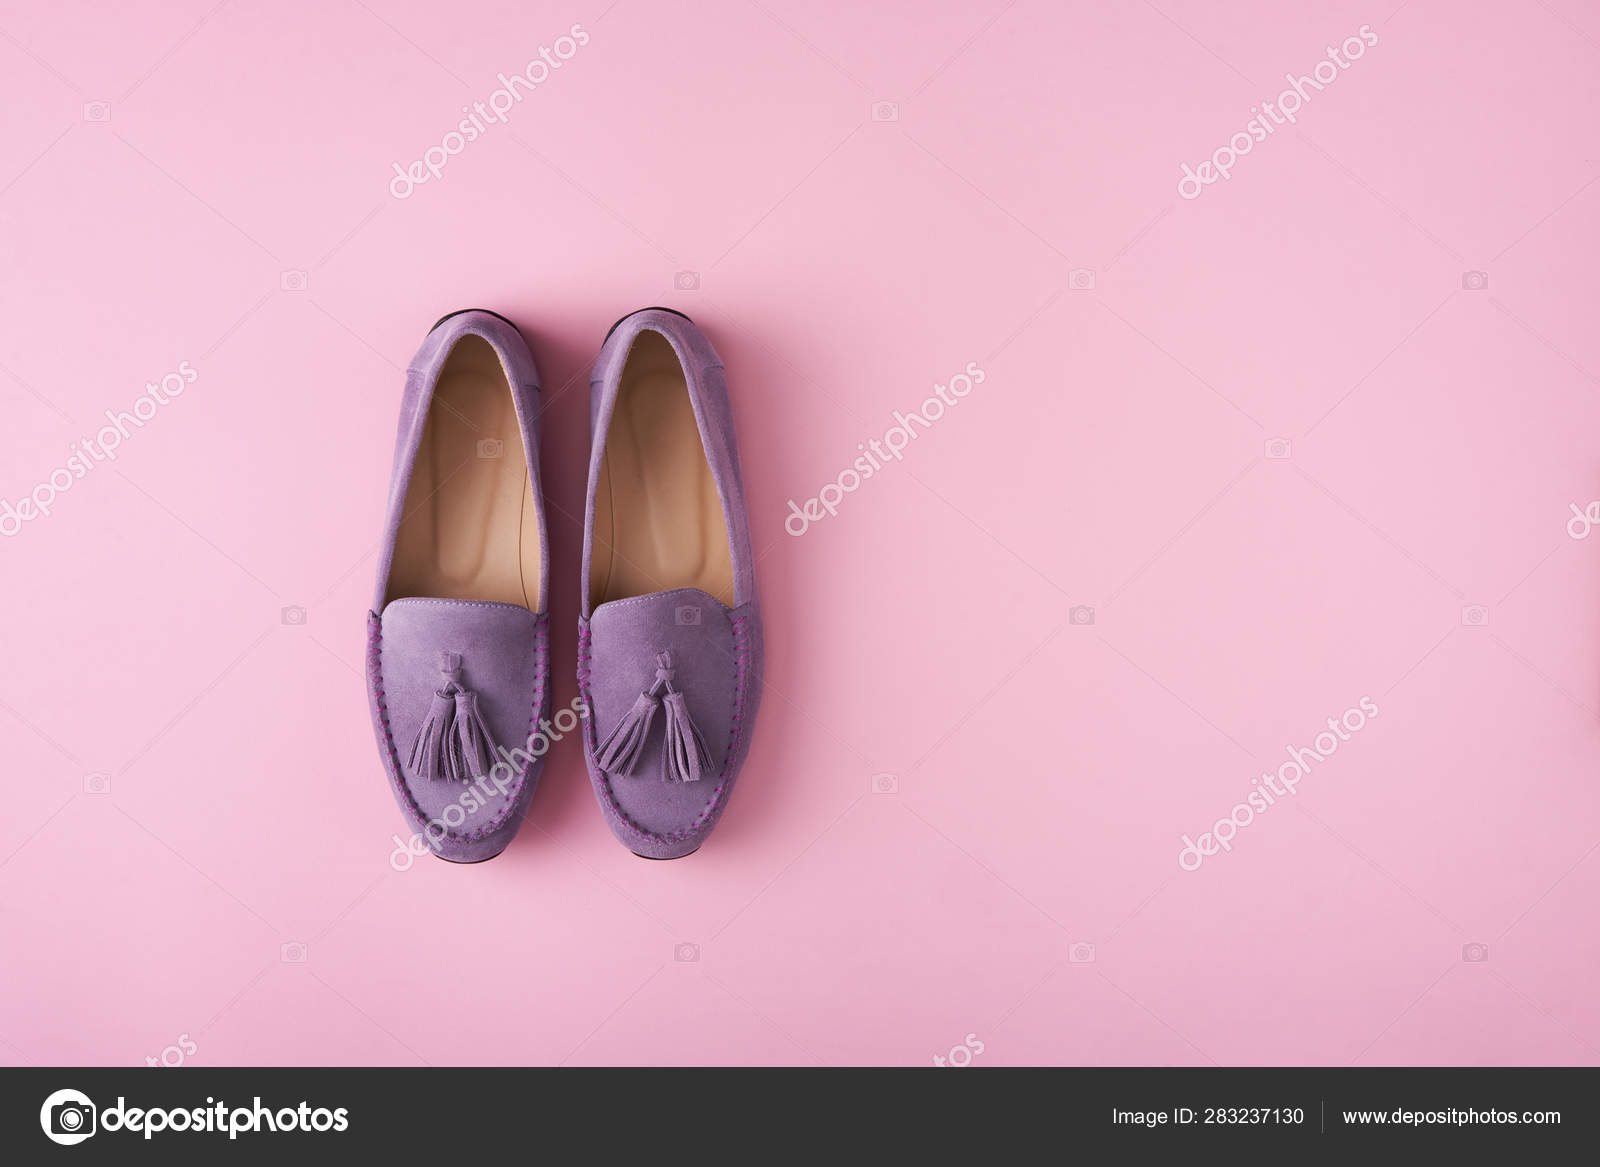 Lilac suede moccasins shoes over lilac